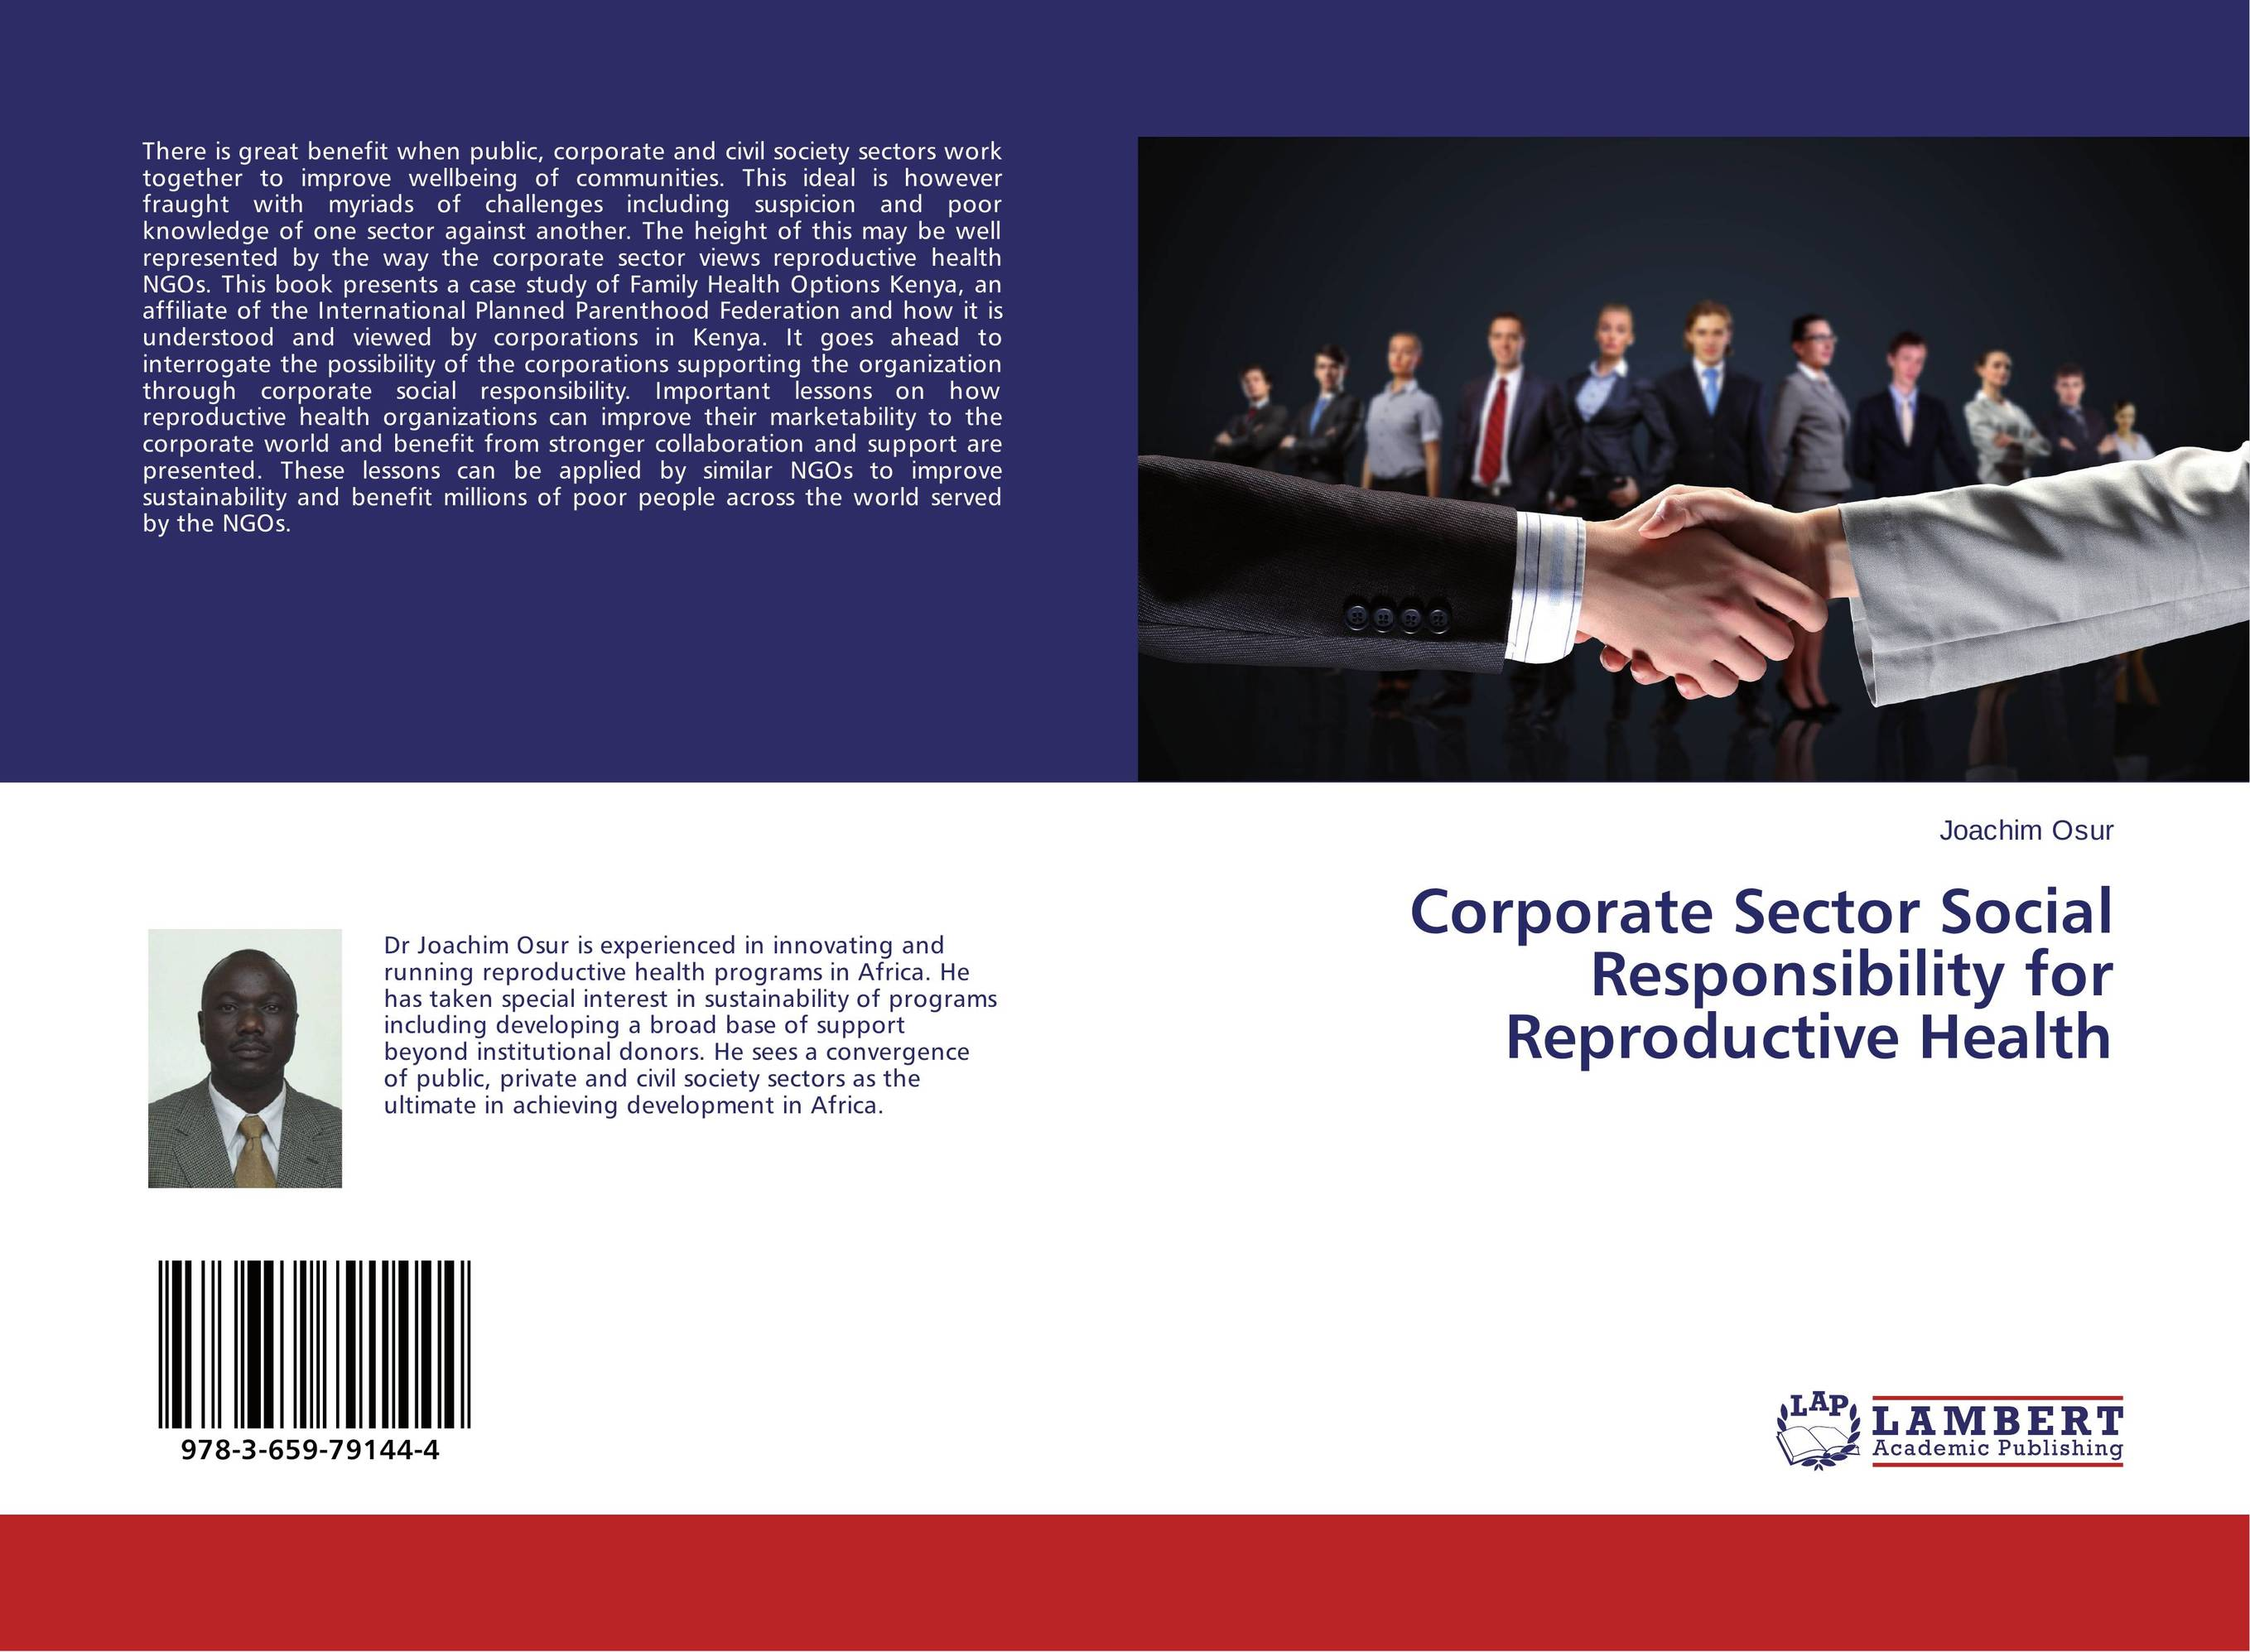 Corporate Sector Social Responsibility for Reproductive Health ngos